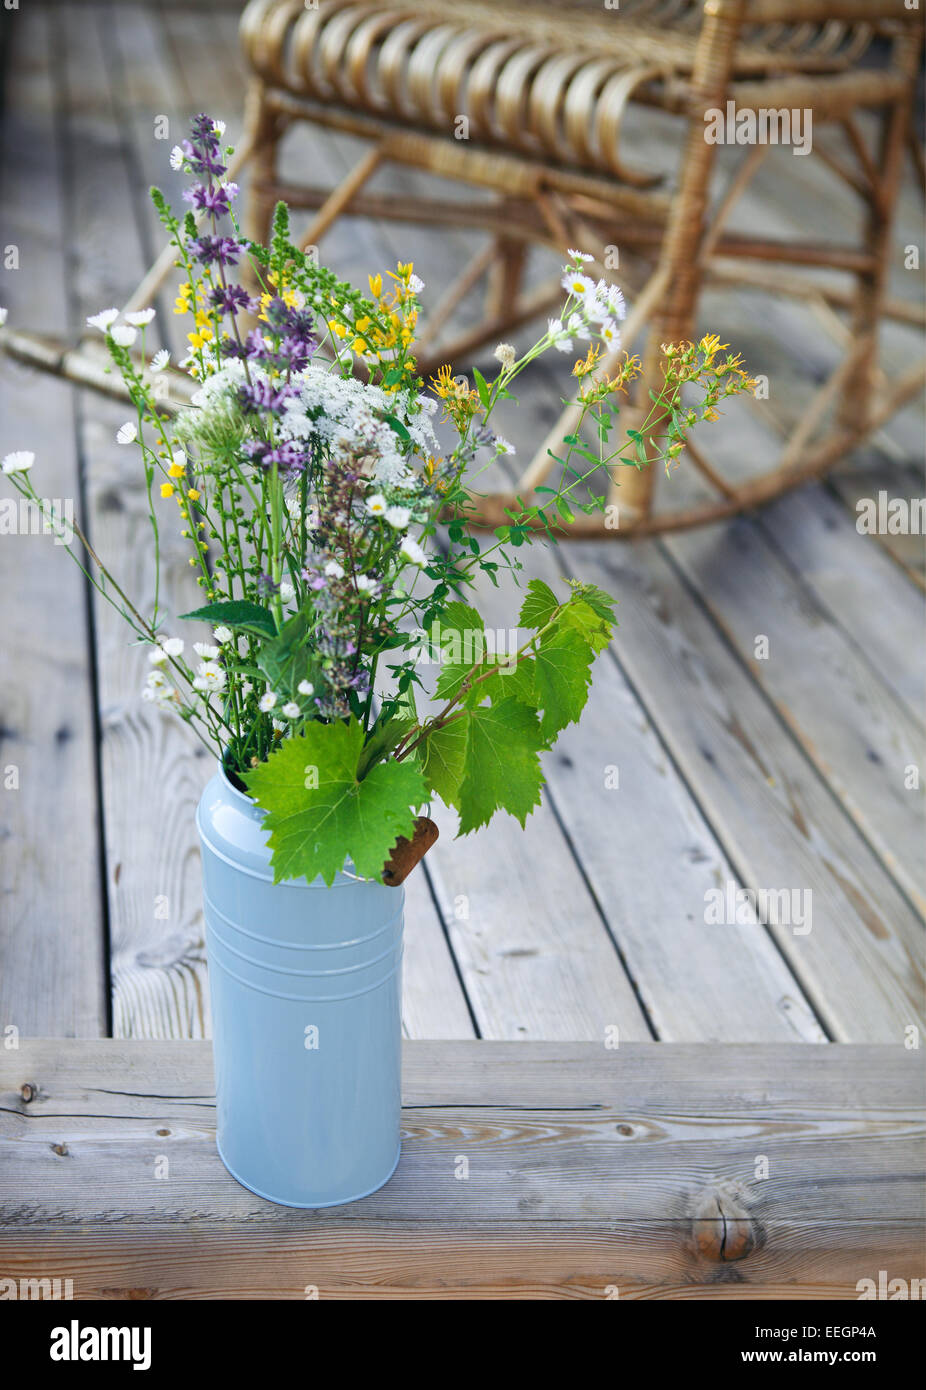 Bright yellow and blue bucket with flowers on porch near the Adirondack rocking chair - Stock Image